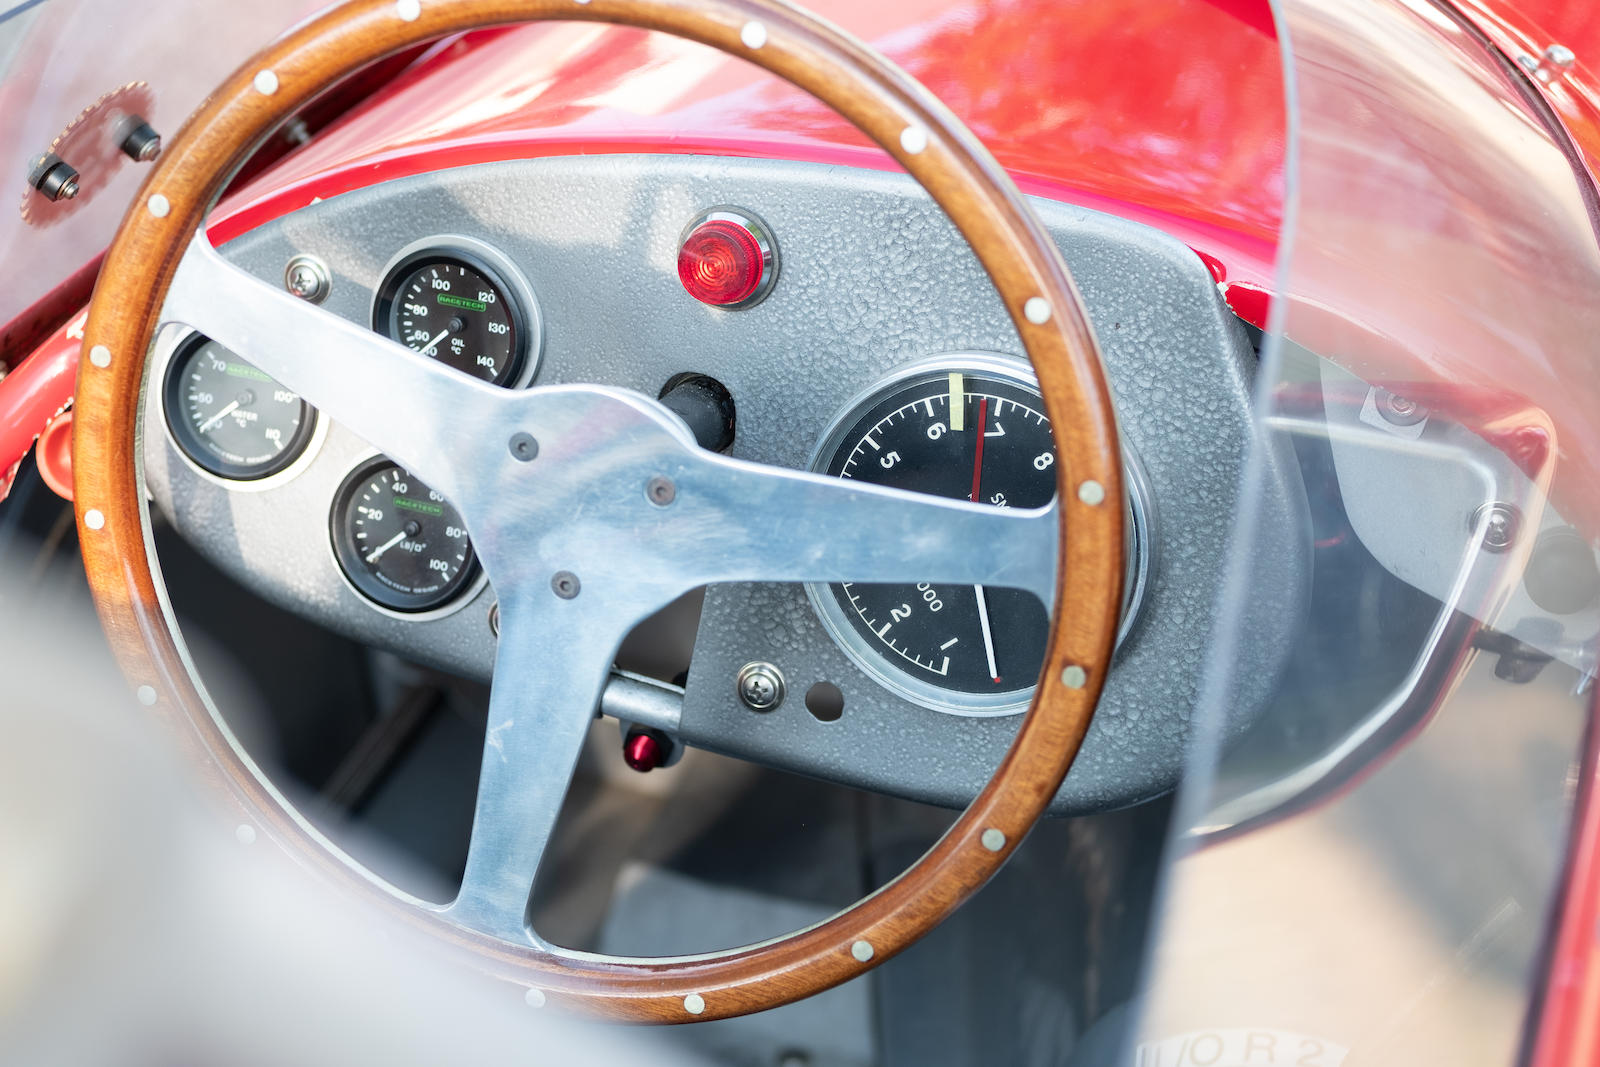 Red Stanguellini Formula JR Monoposto interior steering wheel